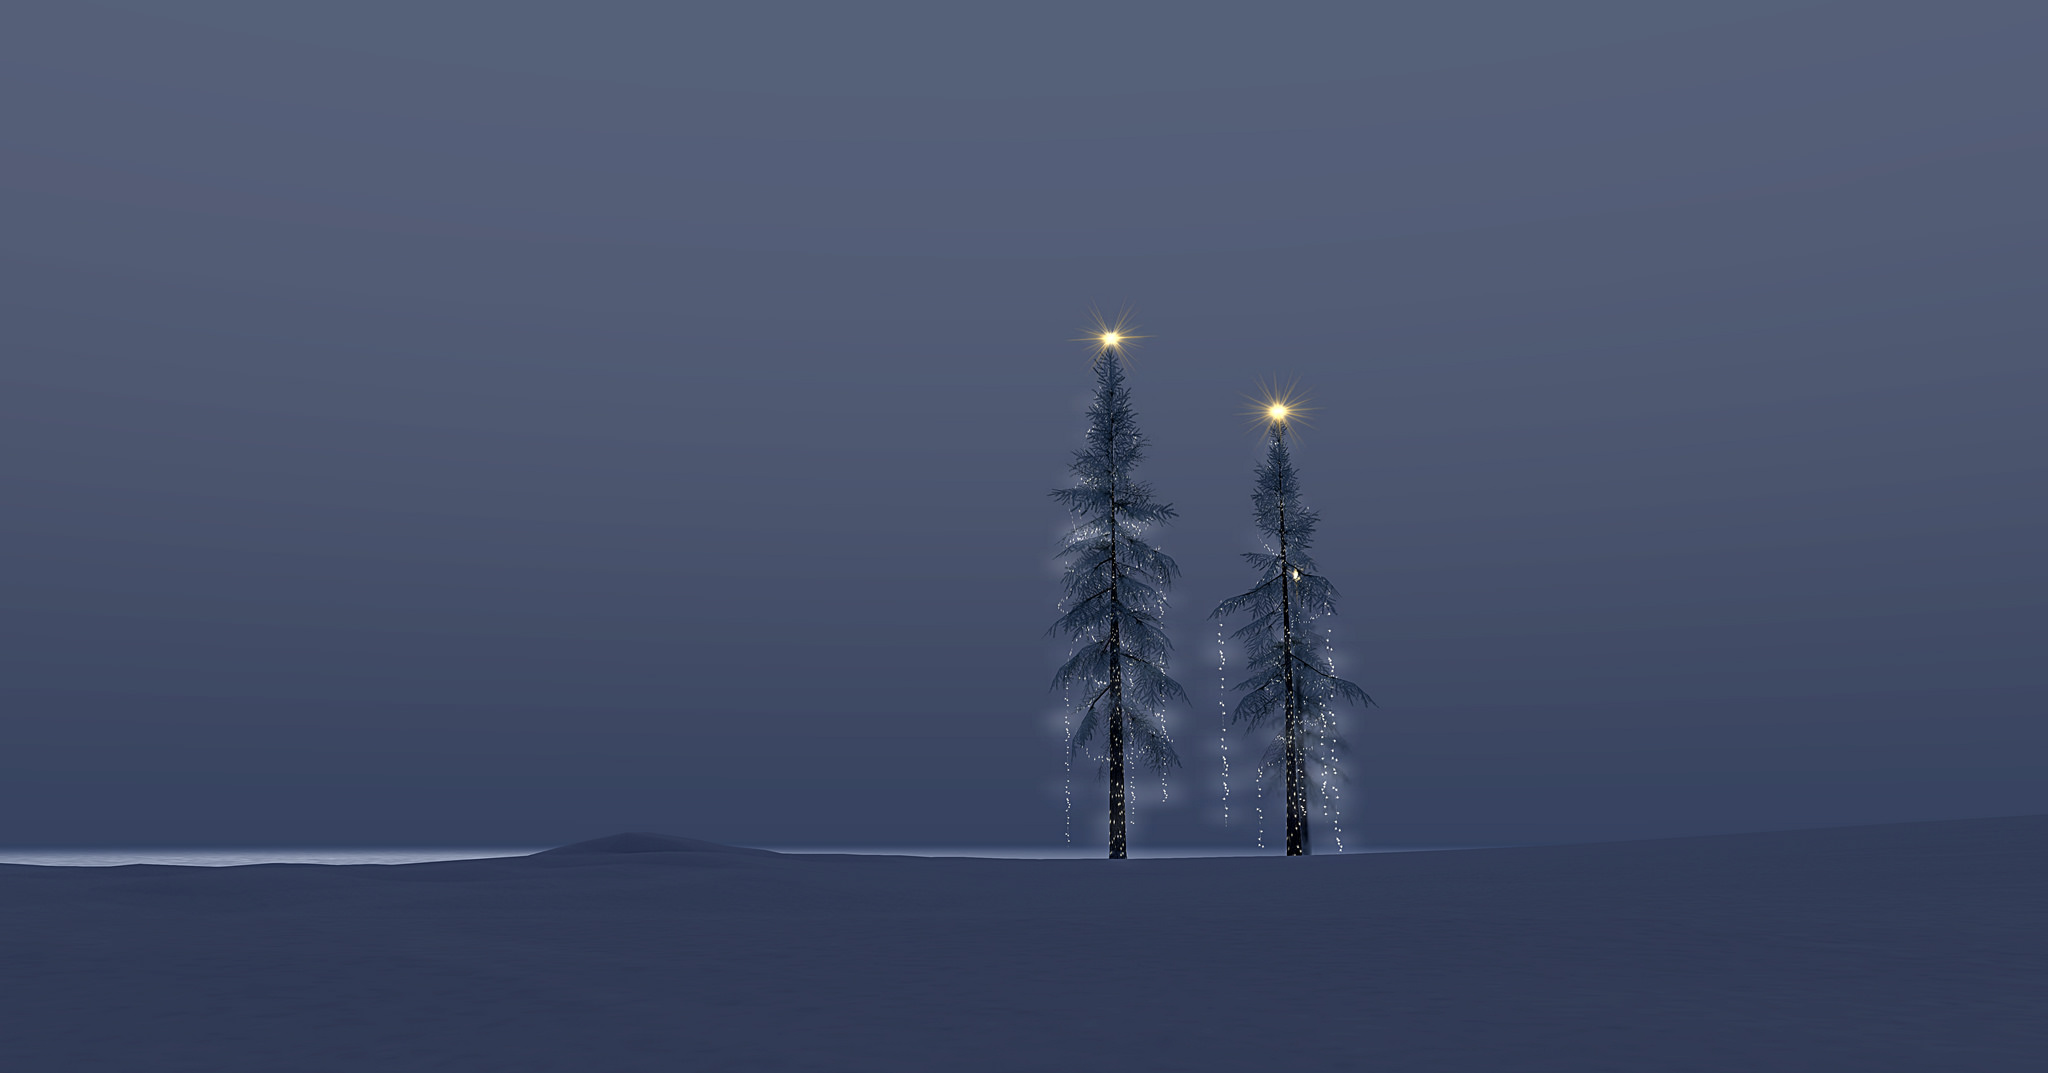 Against a stark grey sky, two tall evergreens are decked with simple white lights